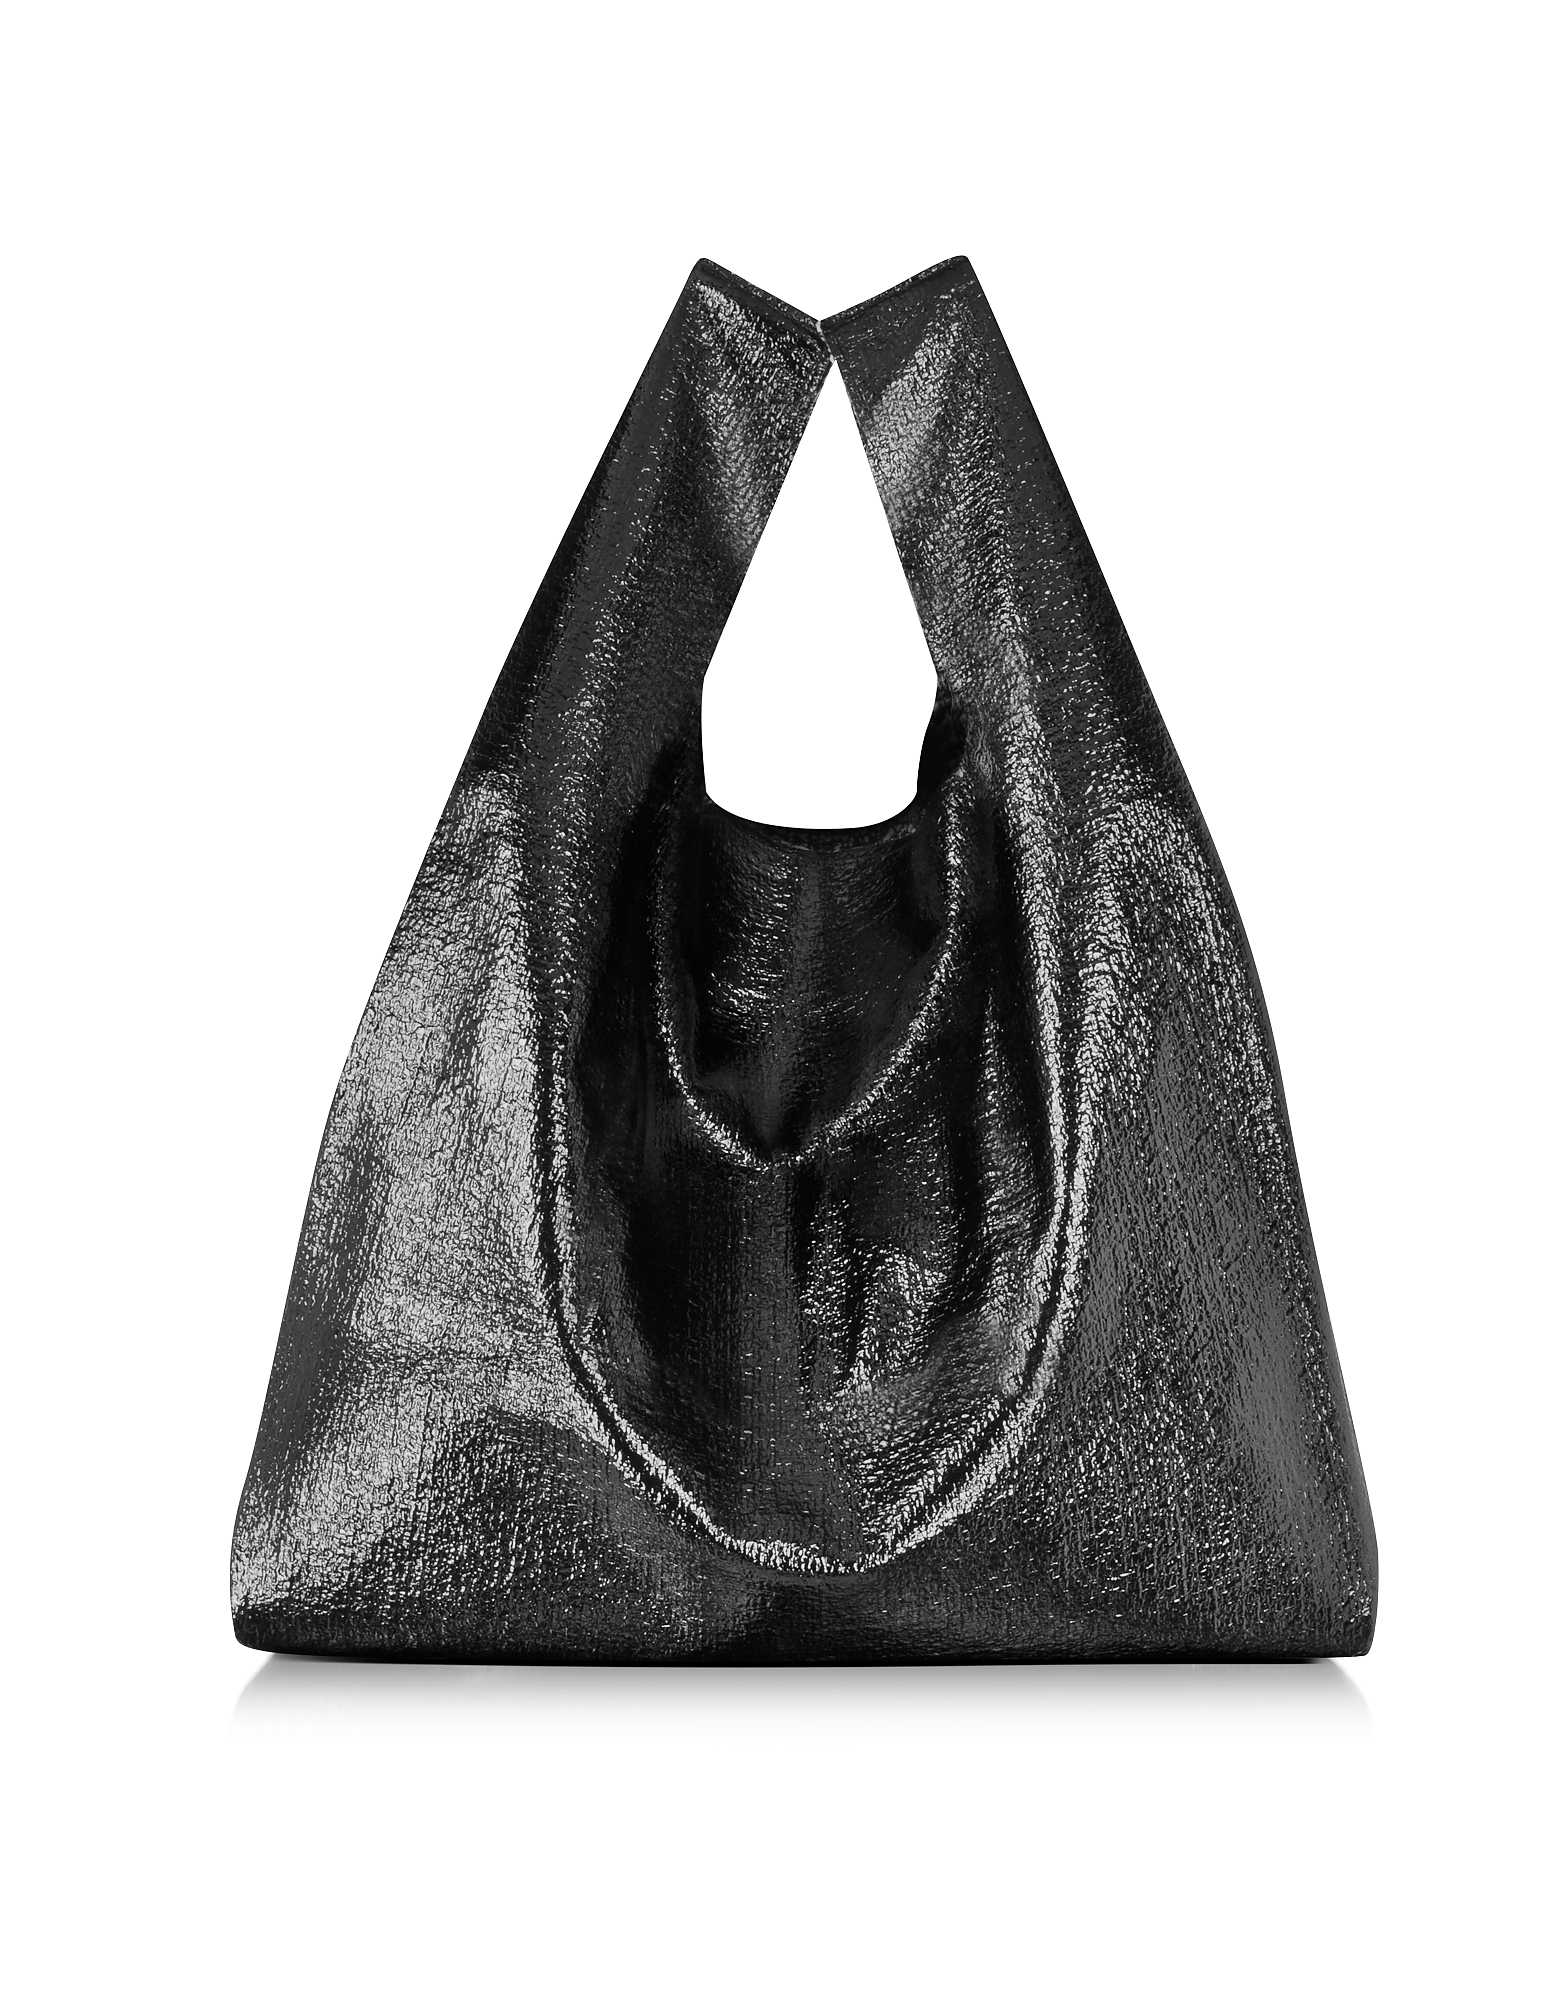 Market Bag in Eco Pelle Nera Glossy